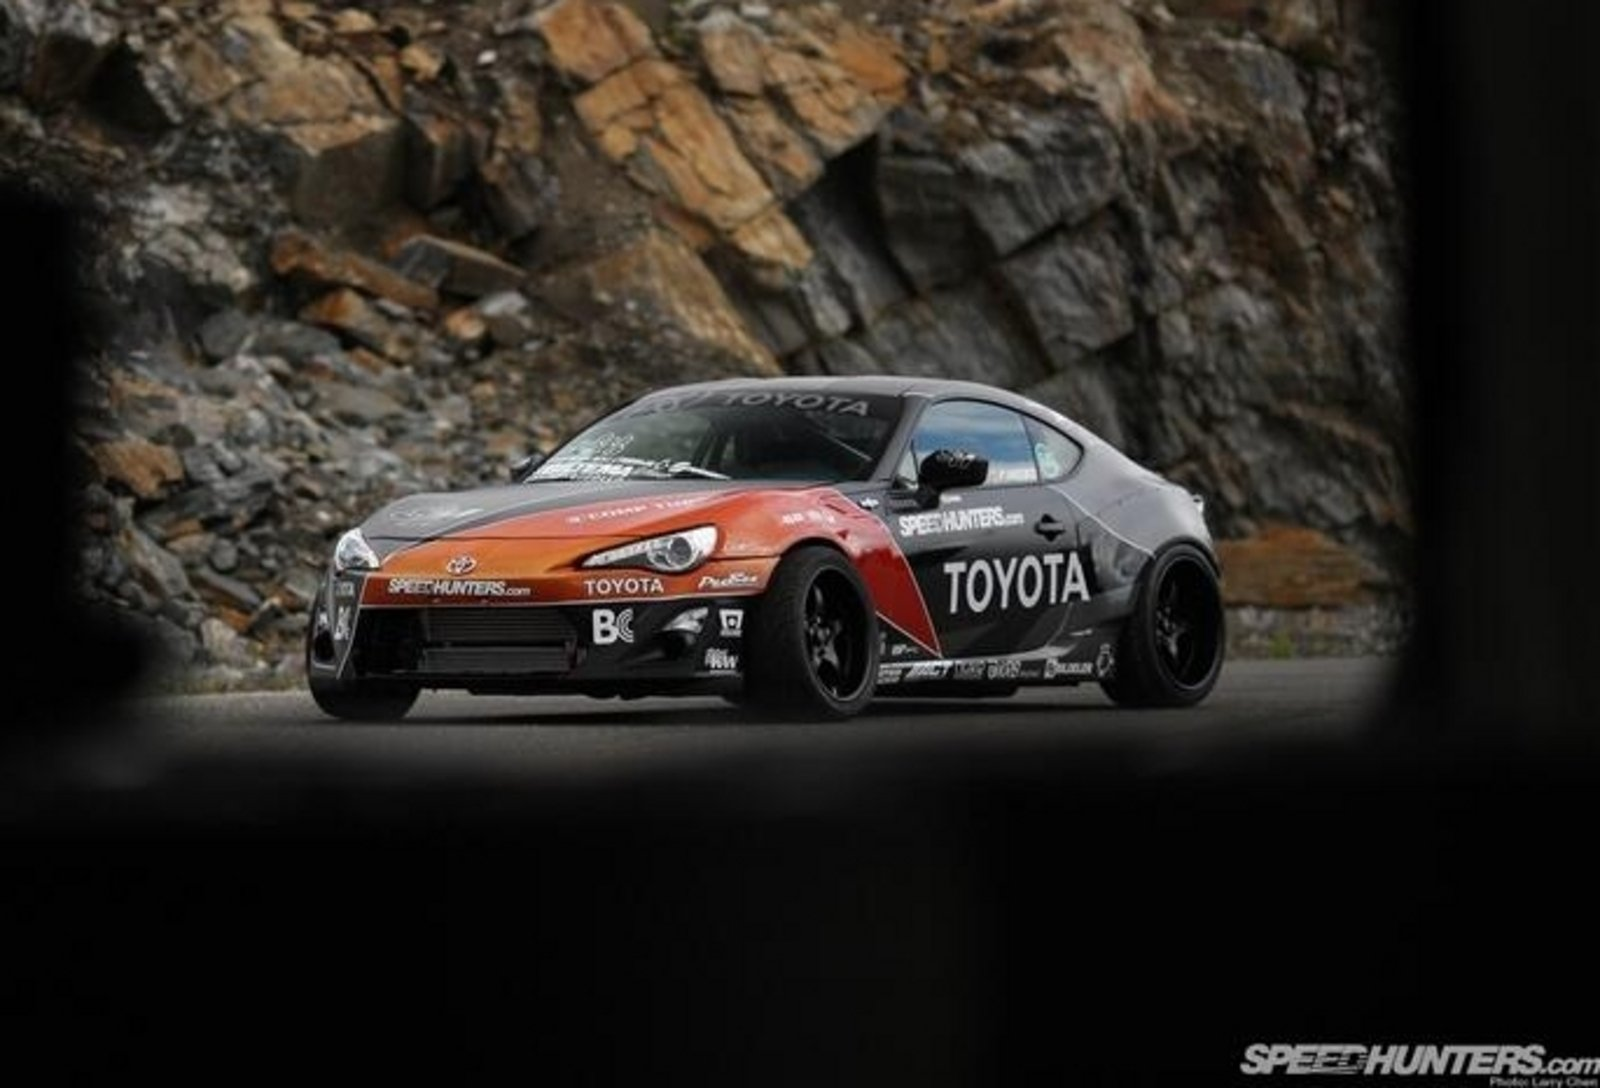 Toyota 86 Livery >> 2013 Toyota GT-86X Drift Car By Speedhunters And KW Review ...